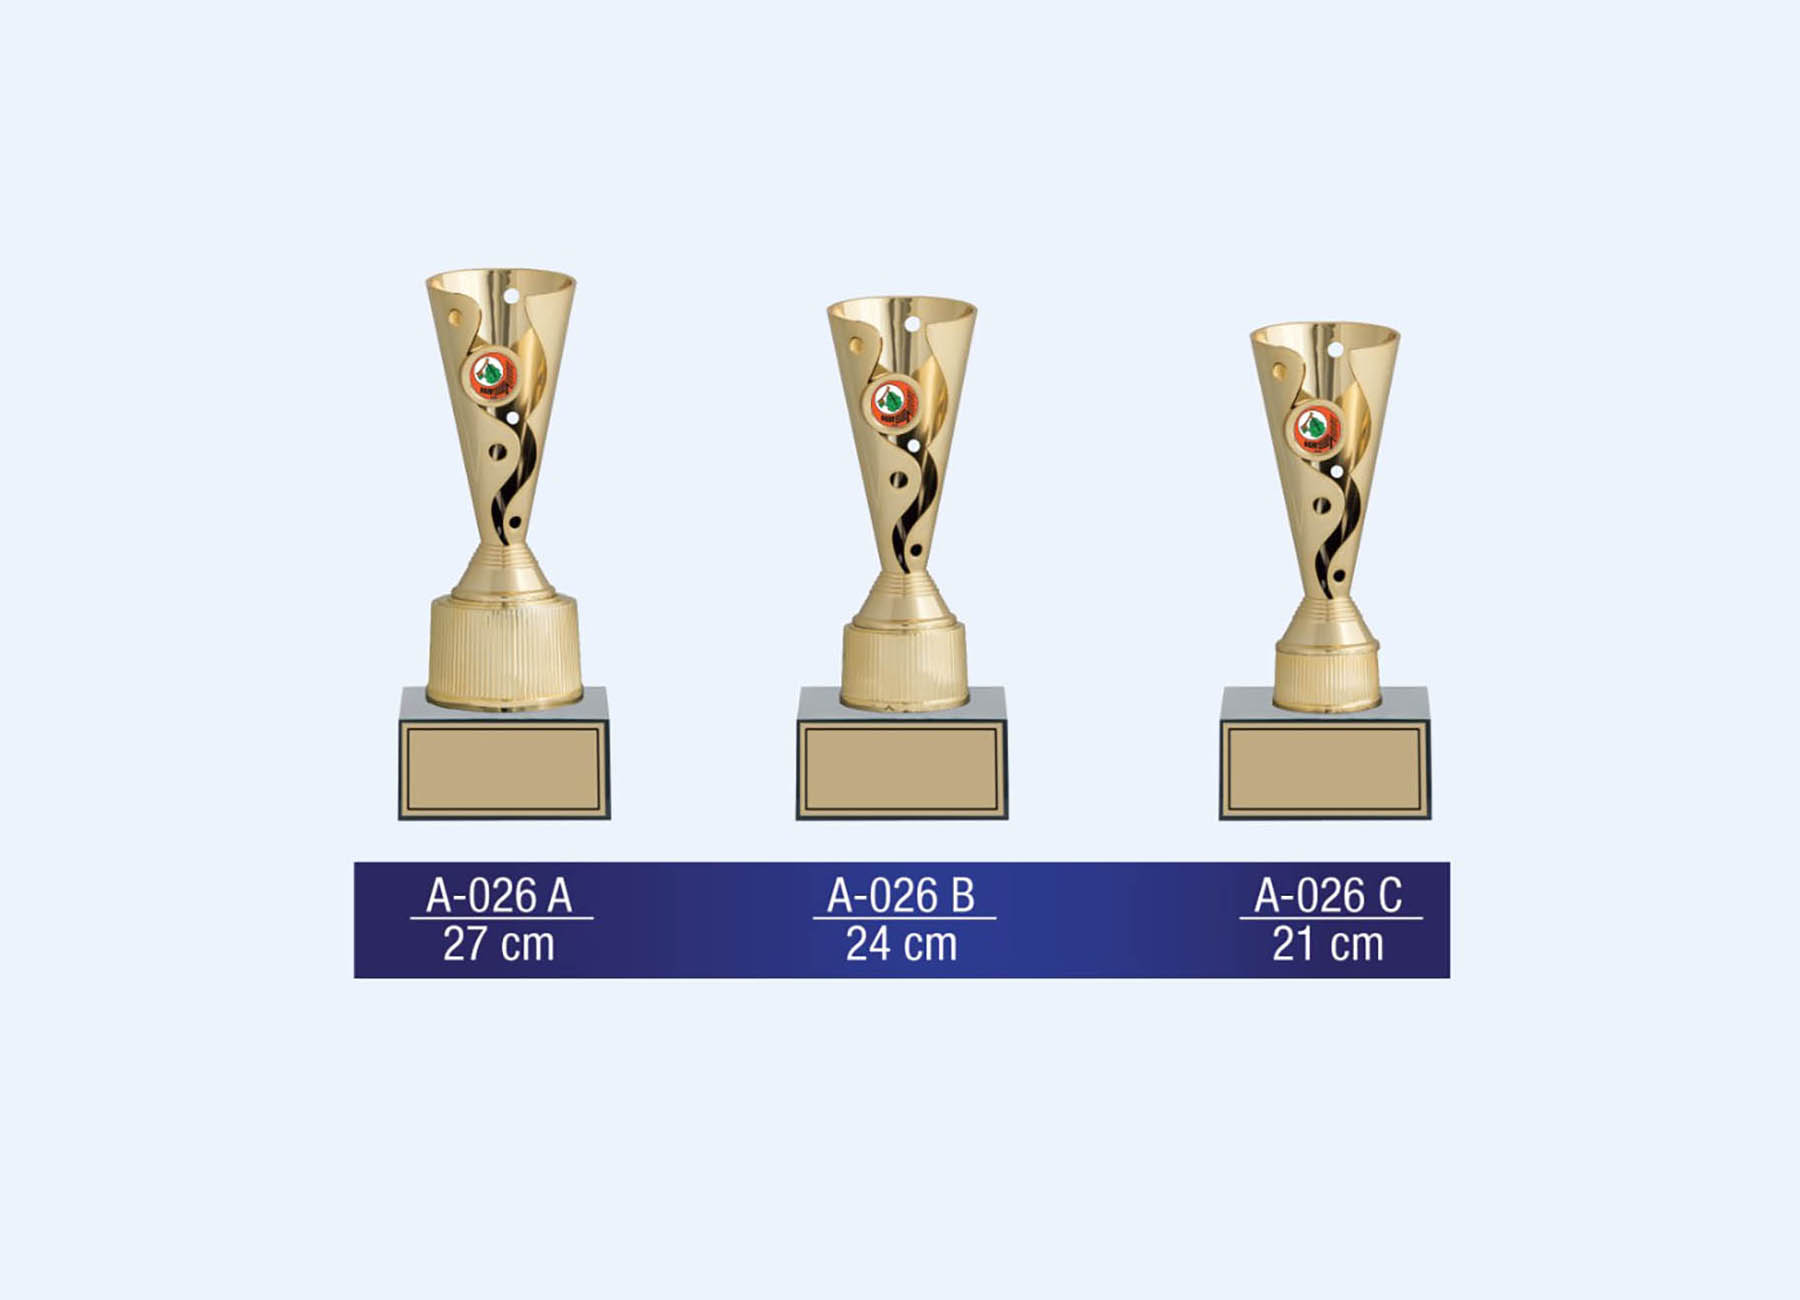 A-026 General Cups